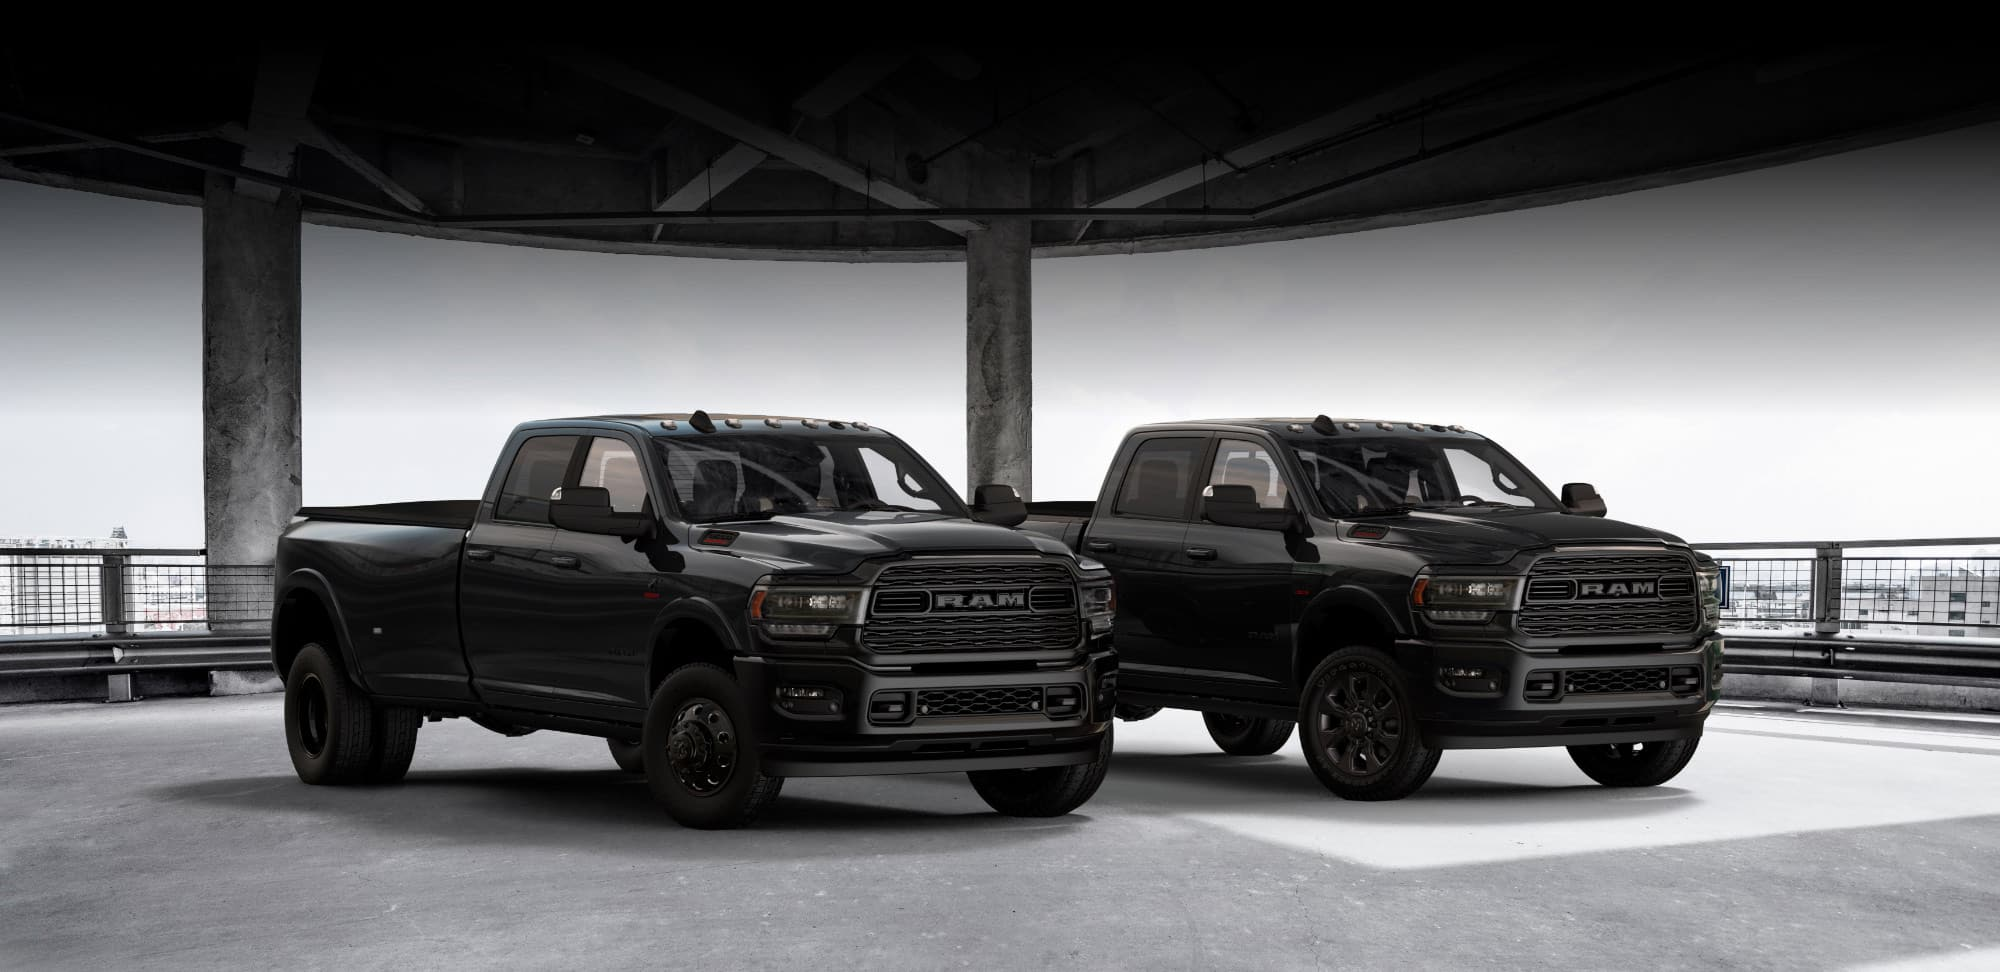 2020 Ram Heavy Duty Limited Black Edition Ram Trucks